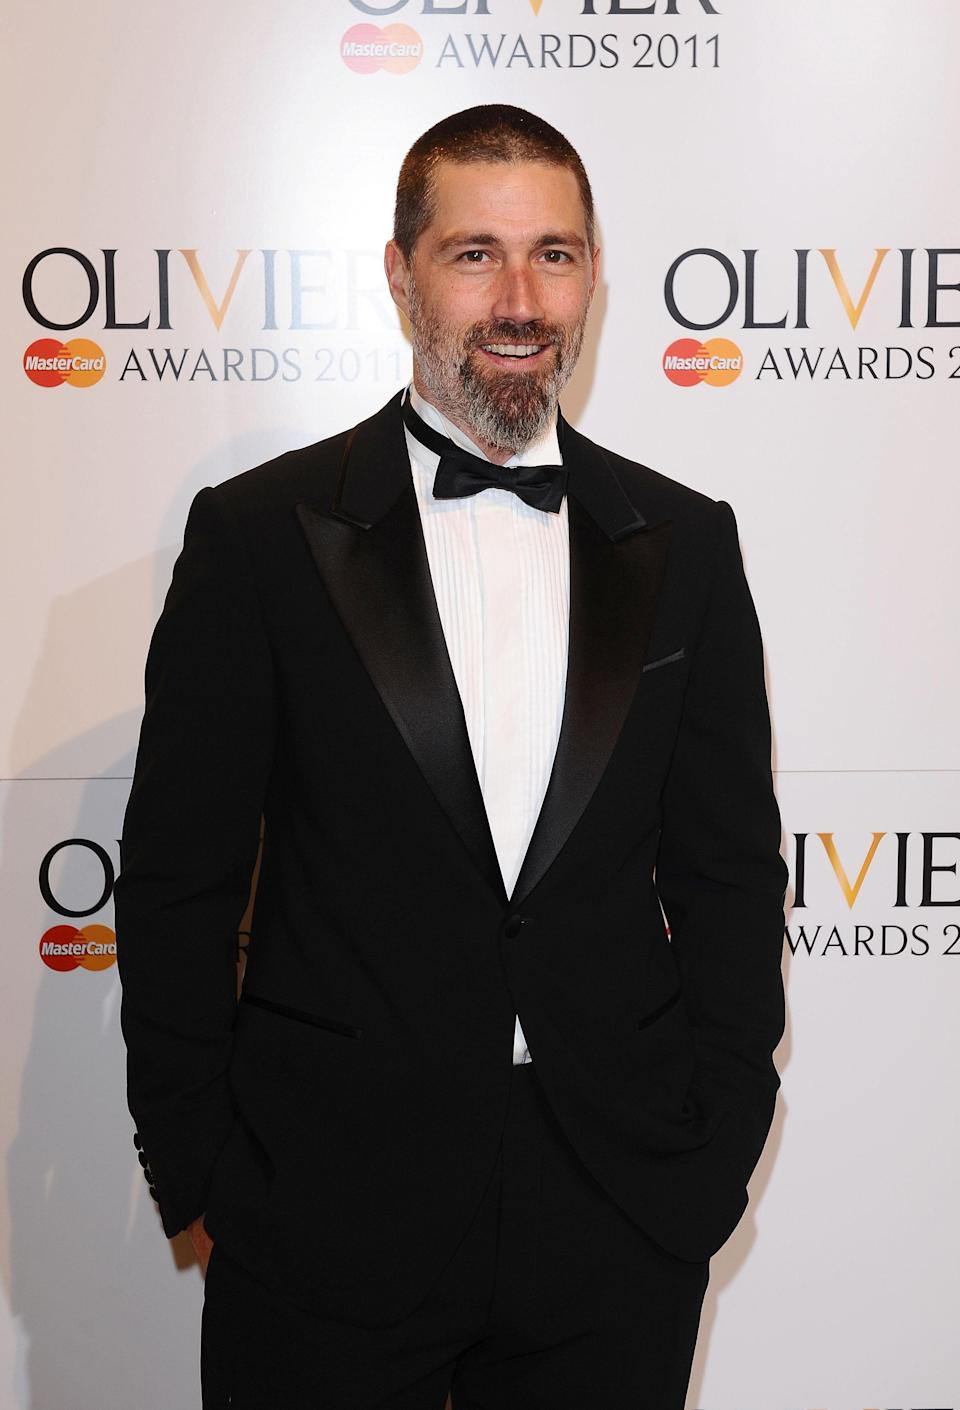 Matthew Fox (Photo: PA)